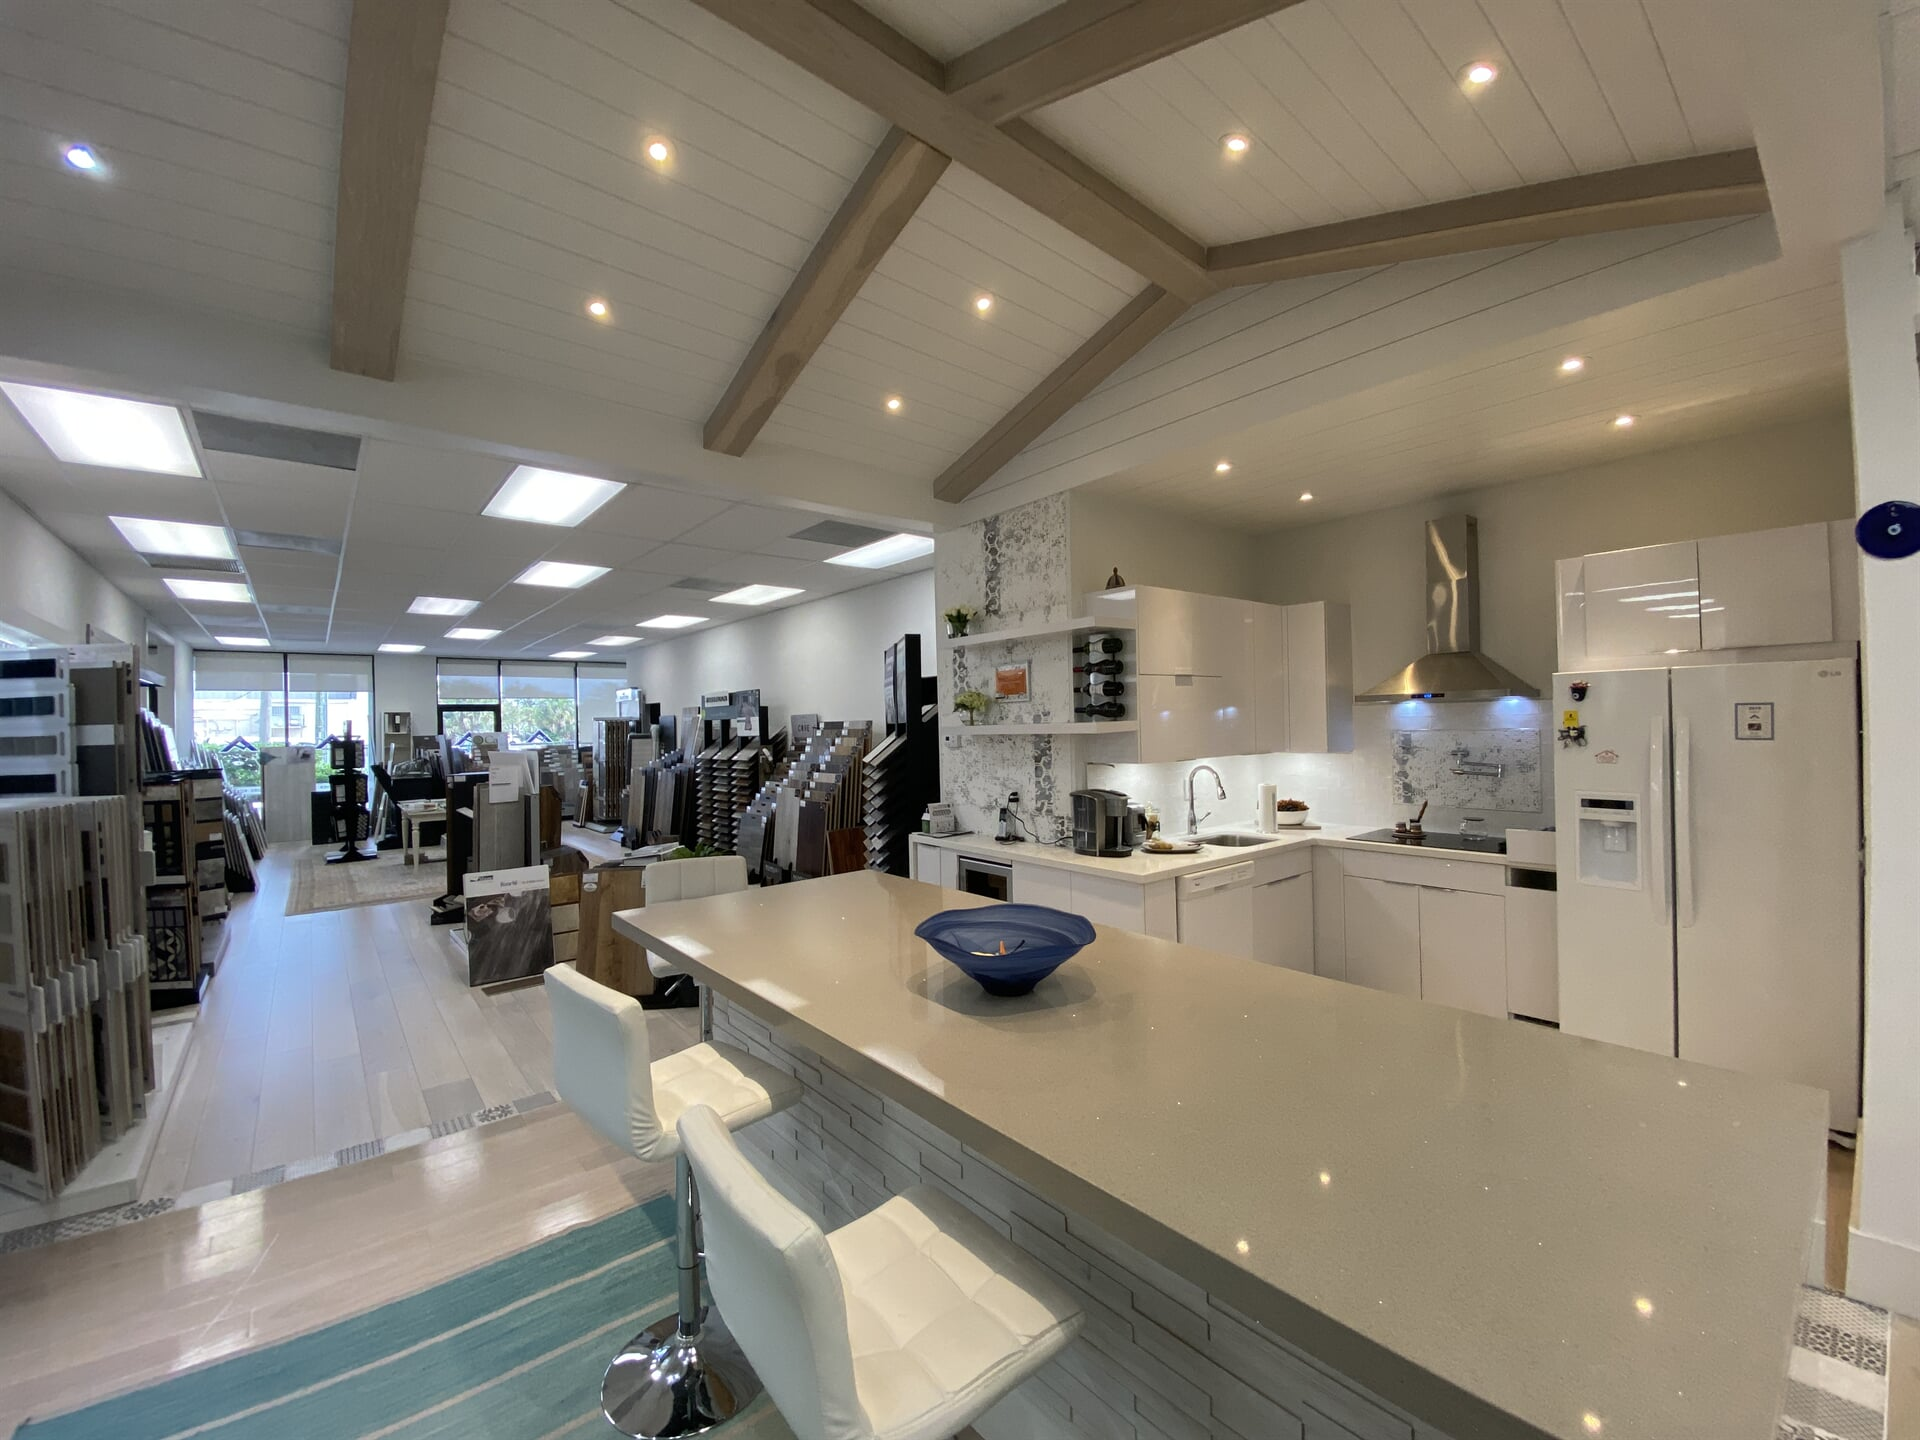 Custom kitchen remodeling for your Juno Beach, FL home from Floors For You Kitchen & Bath